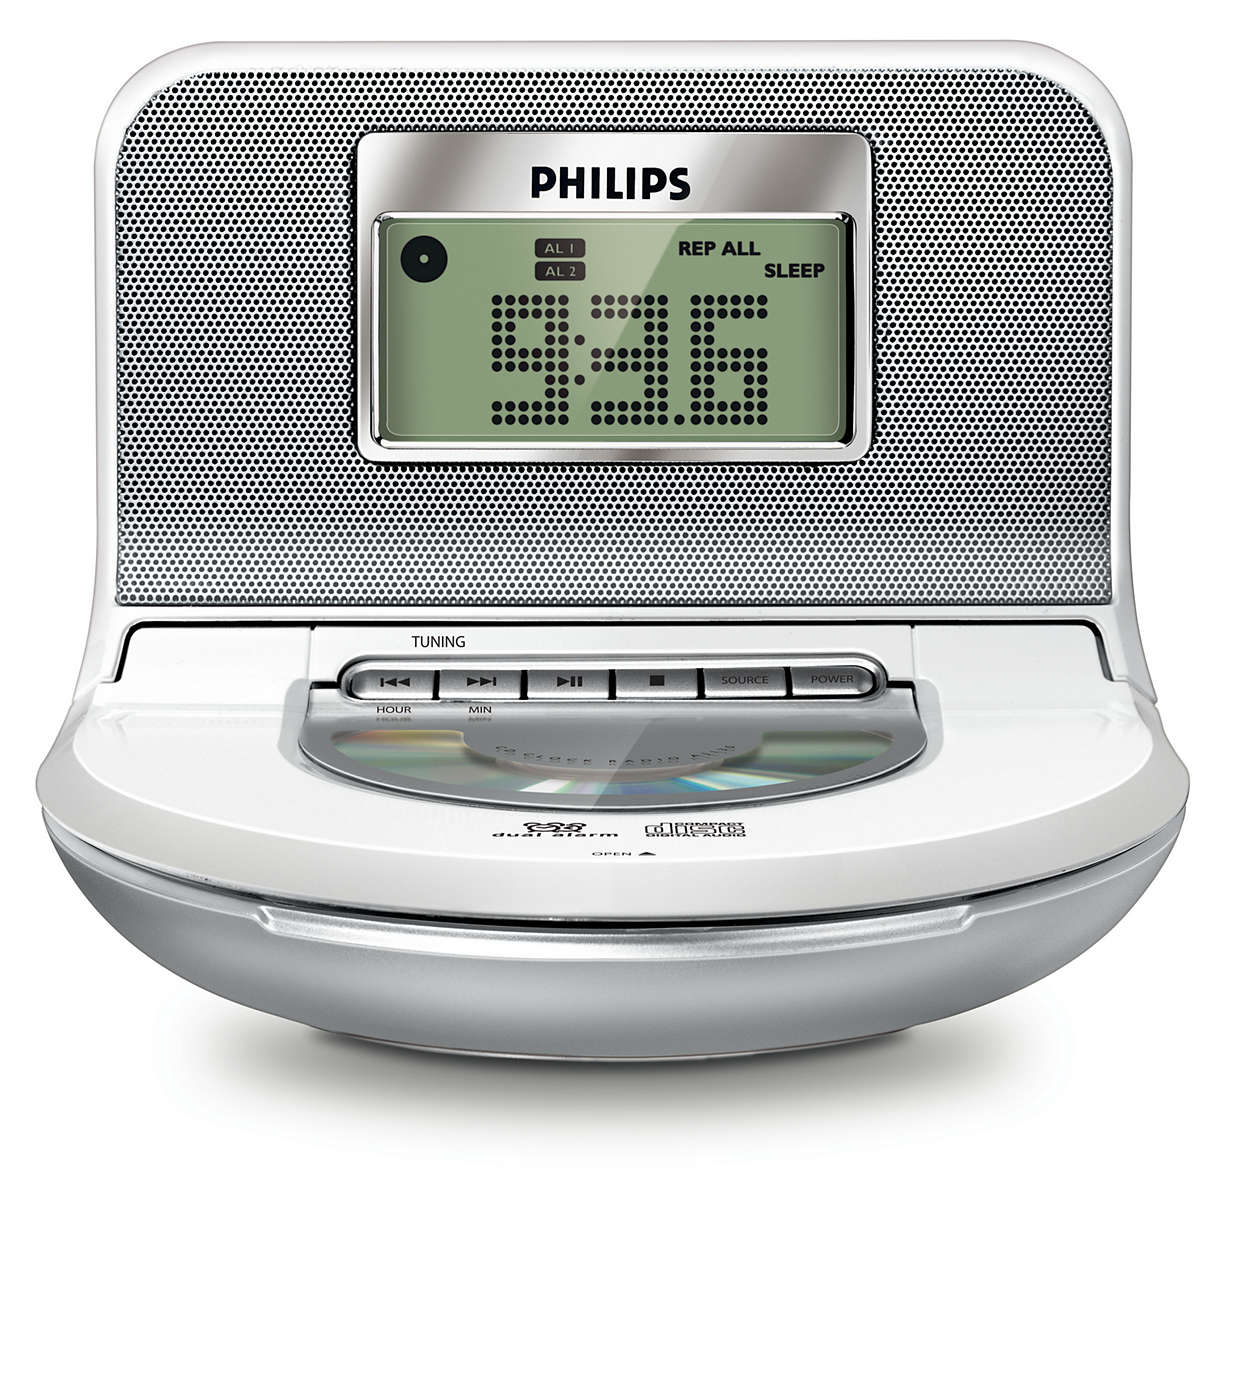 radio r veil avec tuner num rique aj130 12 philips. Black Bedroom Furniture Sets. Home Design Ideas